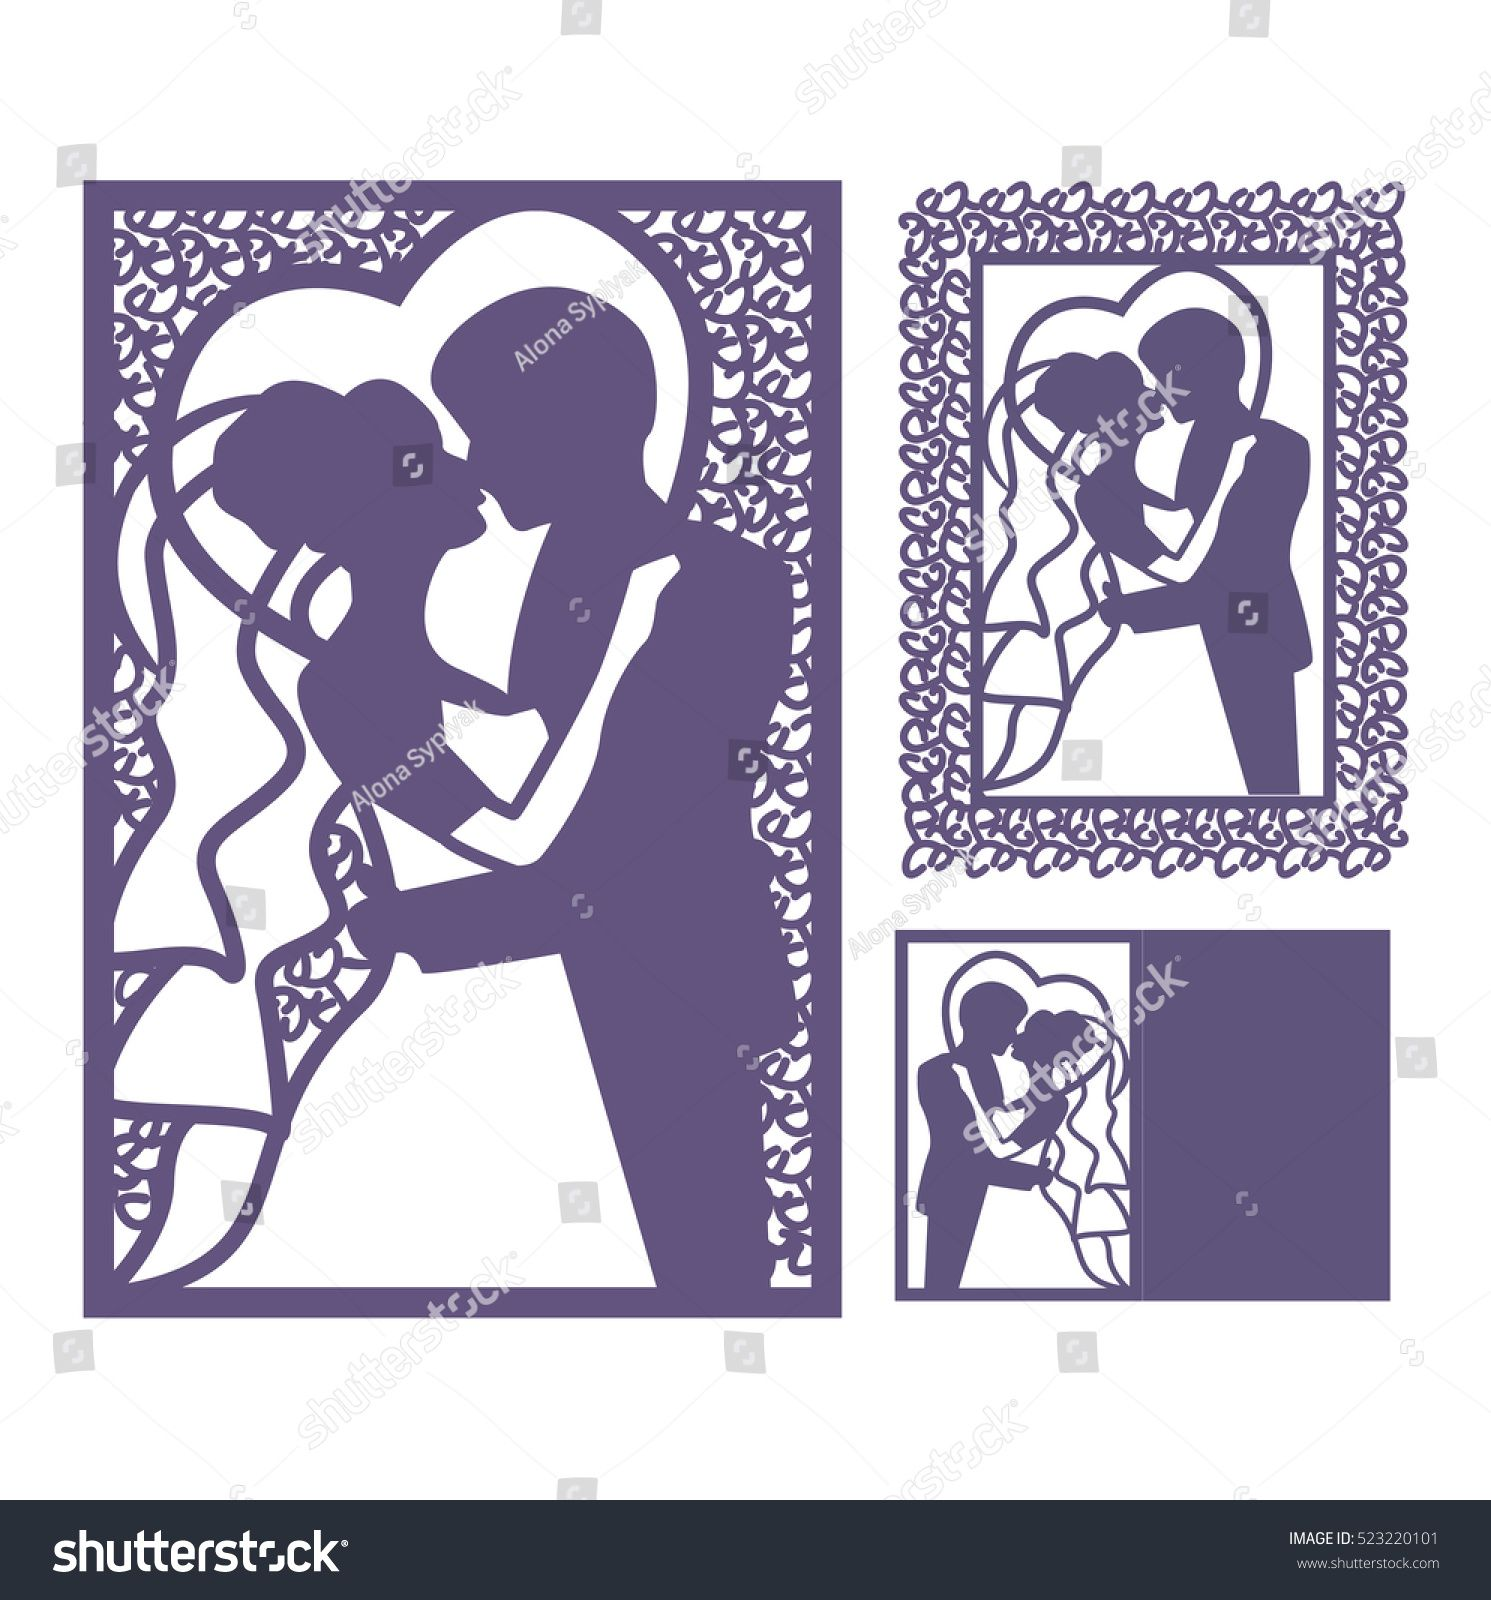 SAVE THE DATE CARDS Romantic Silhouette Couple Postcard with Envelopes